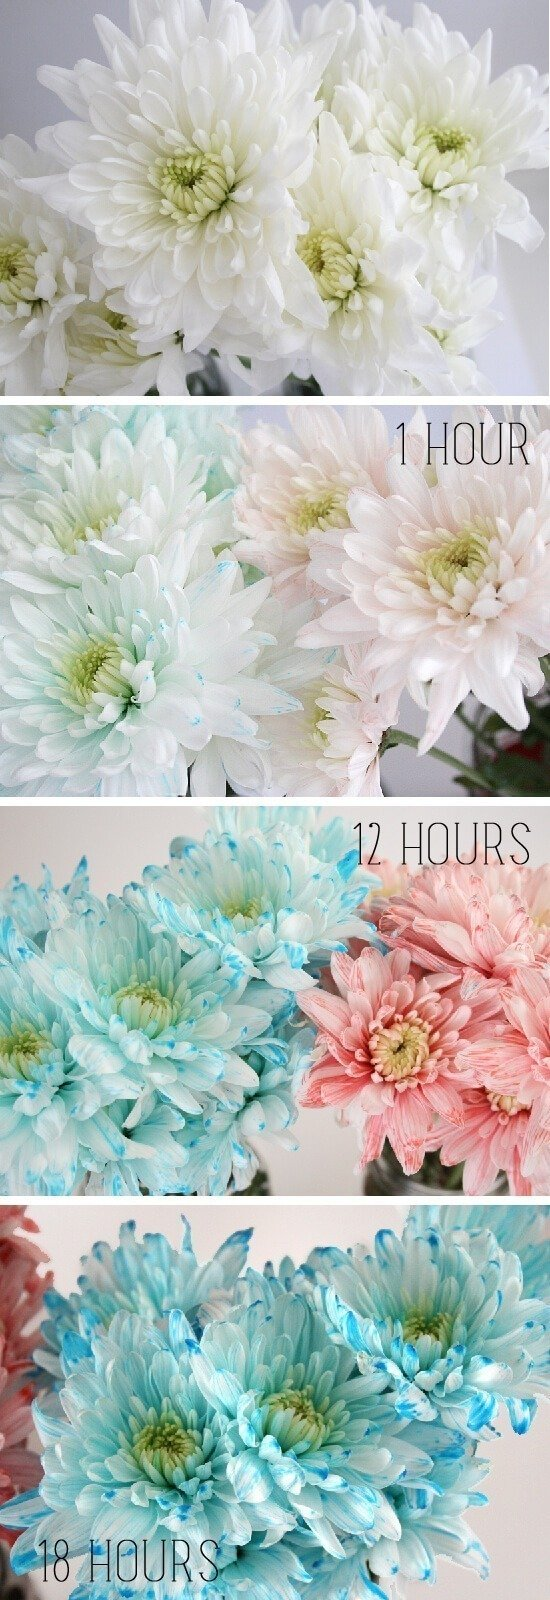 Dyeing Flowers With Food Coloring Tutorial Dream A Little Bigger